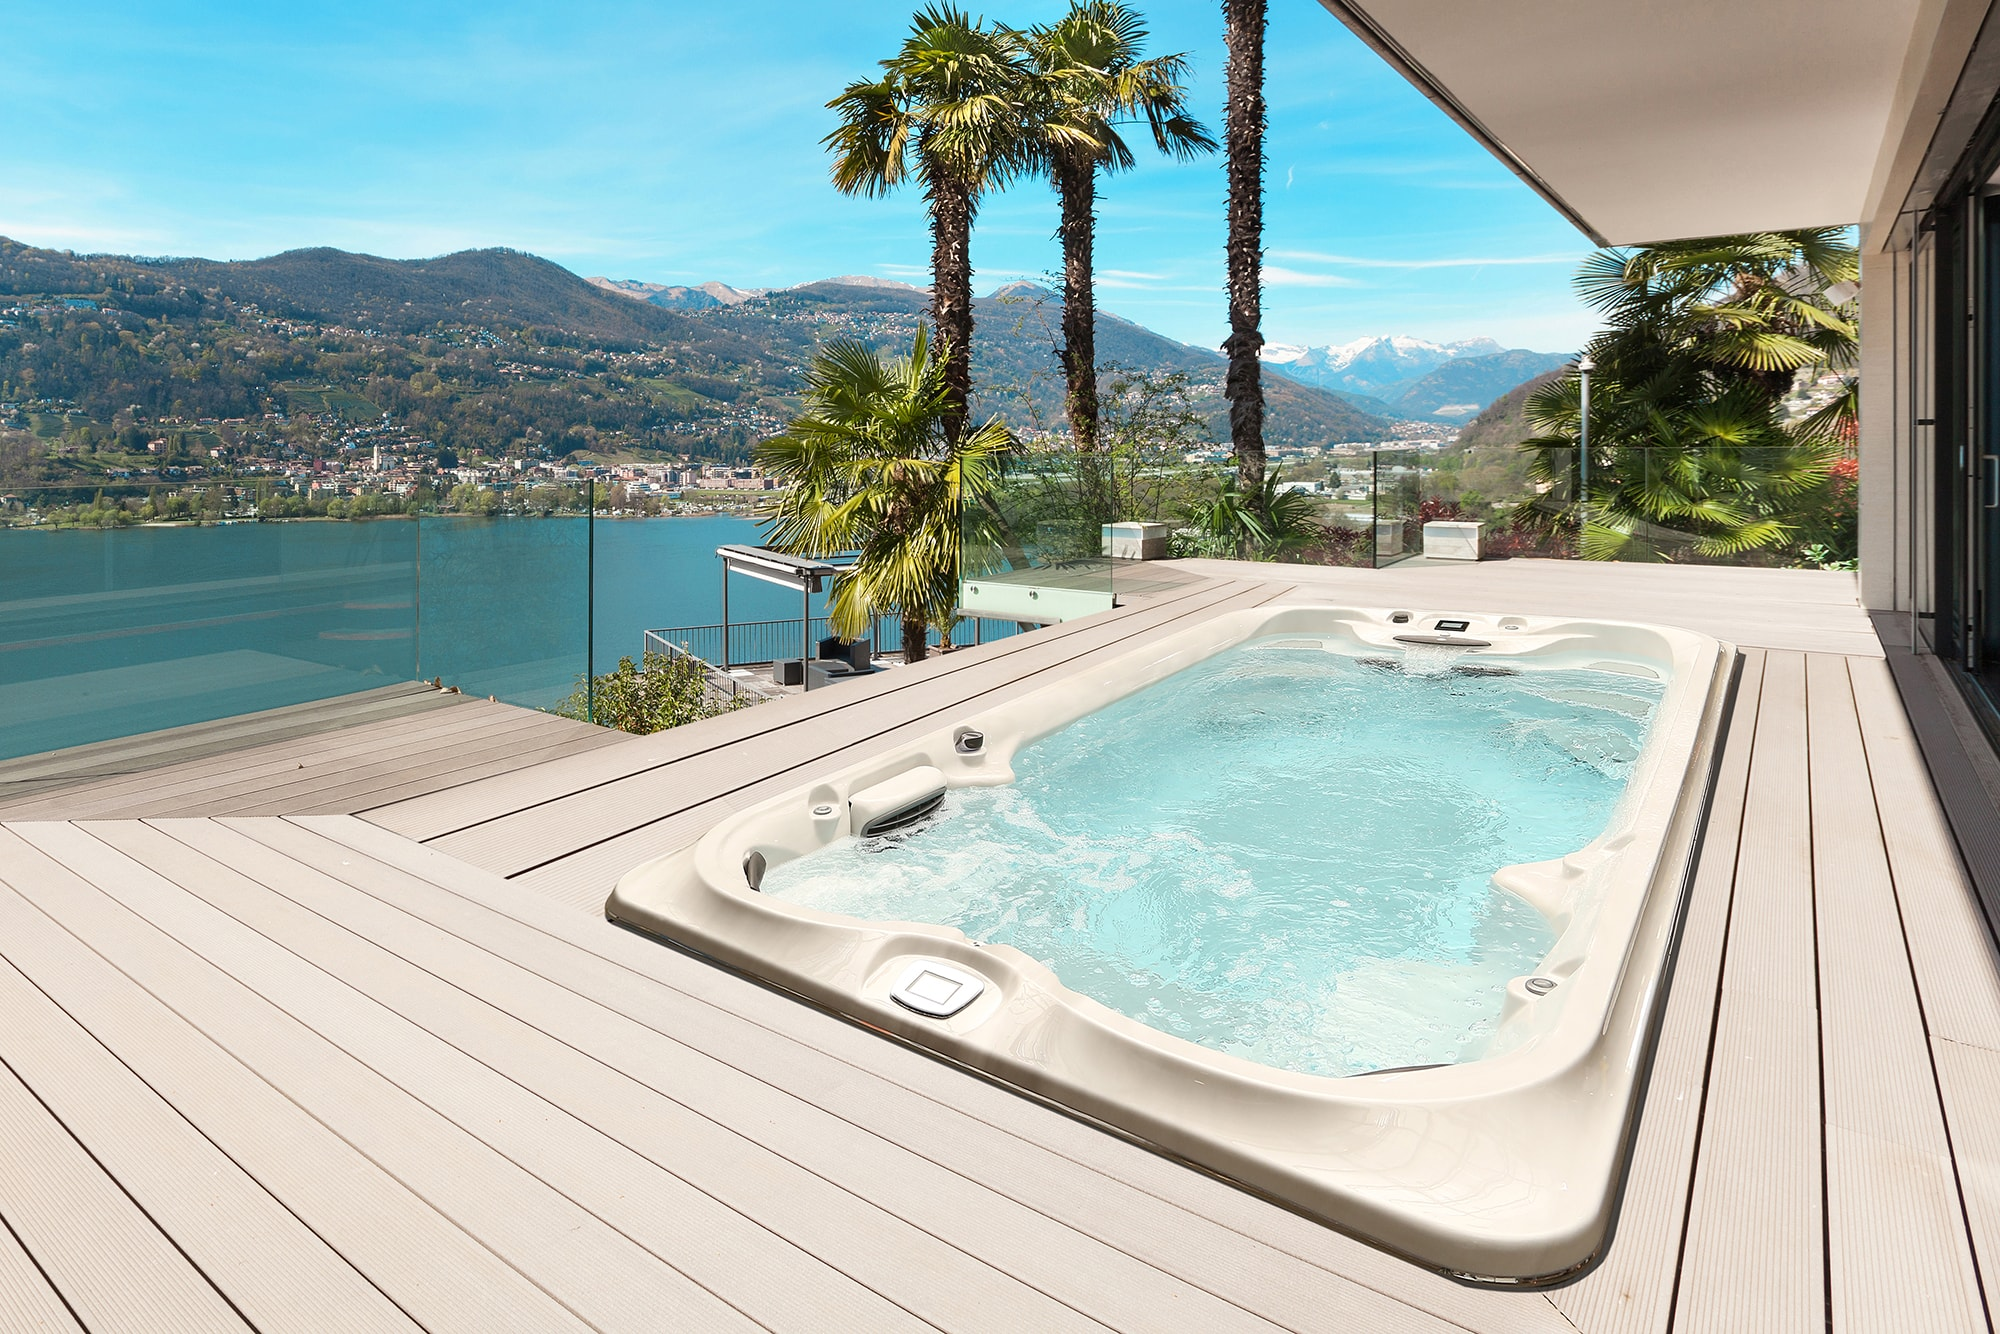 Jacuzzi PowerPro Swim Spa